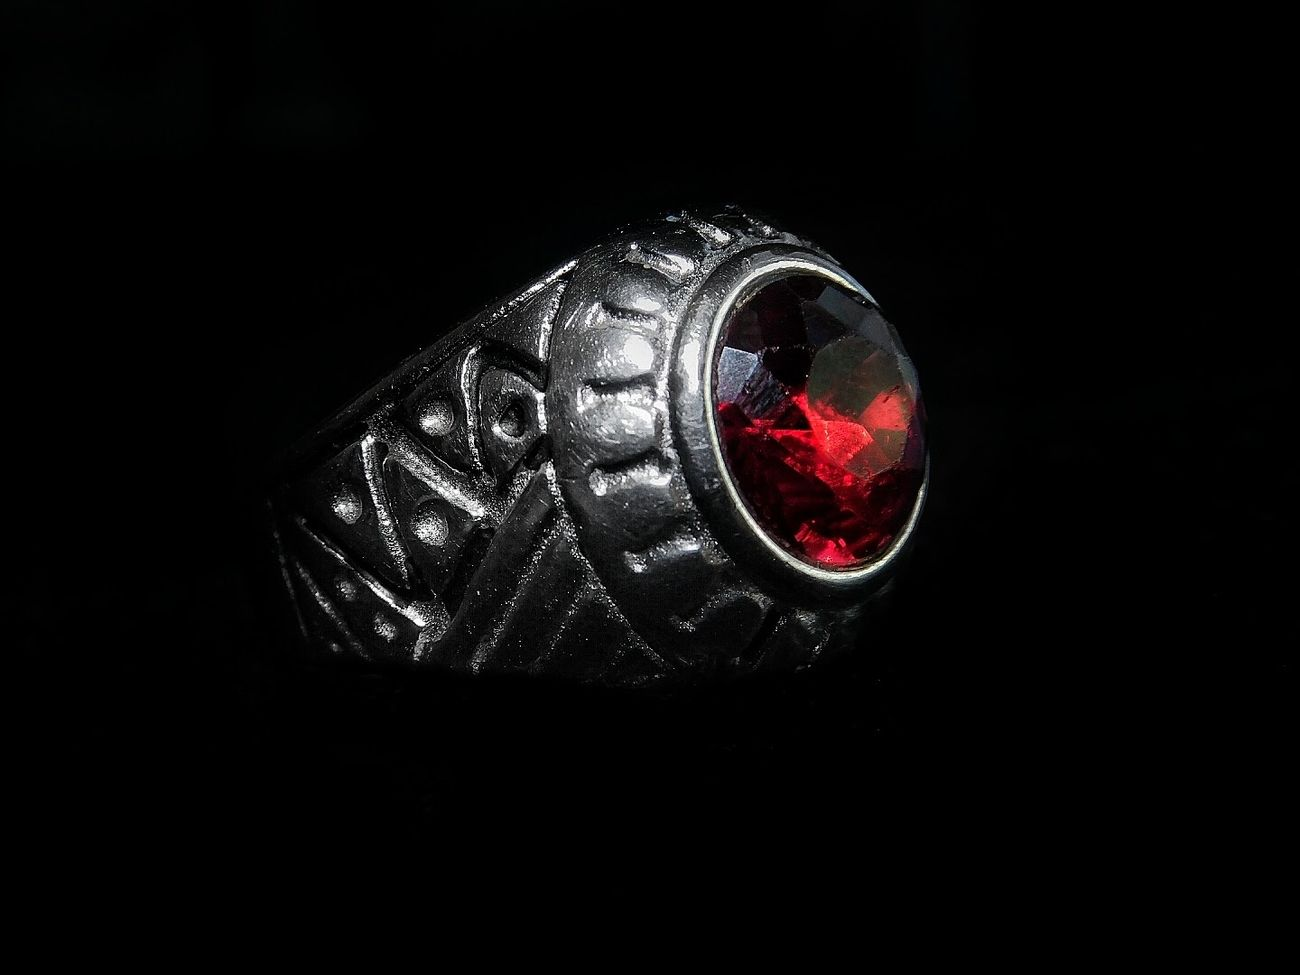 I like this one 🔥 Lux Expensive Ring Ruby Jewerly Casablanca Morocco Nikon Snapseed Walpaper